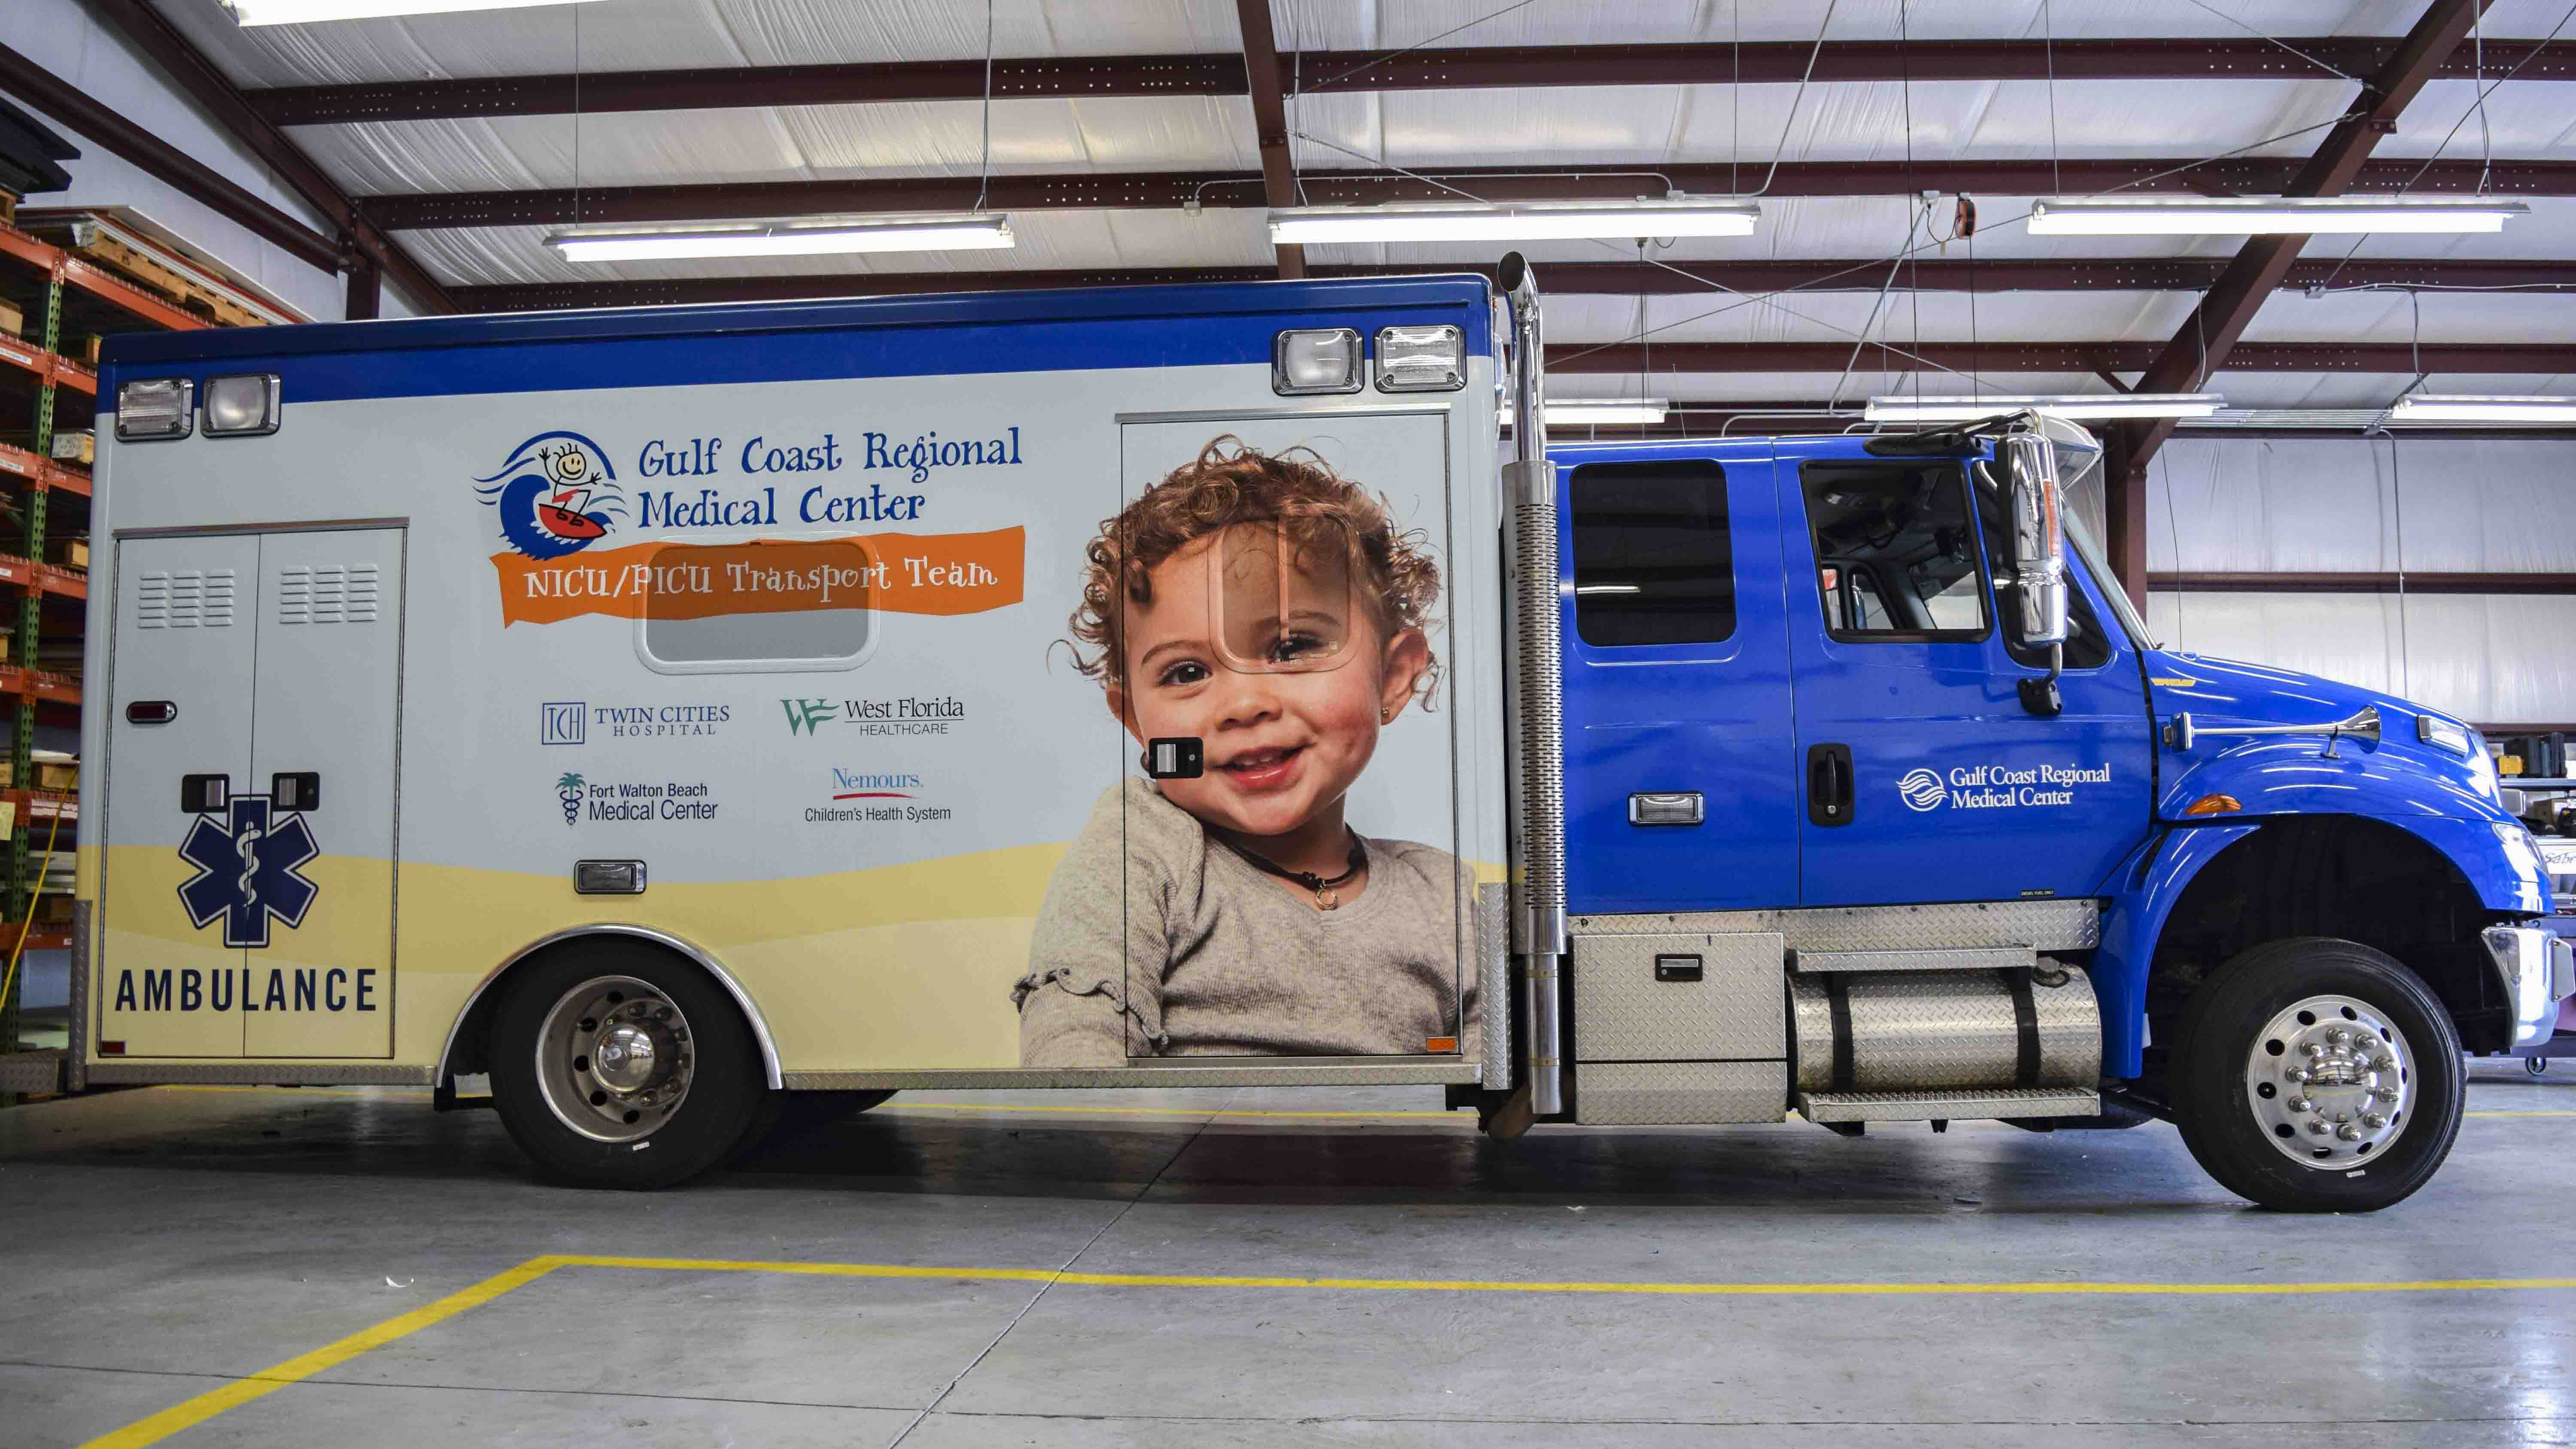 Pensacola Sign - Vehicle Wrap for Gulf Coast Regional Medical Center